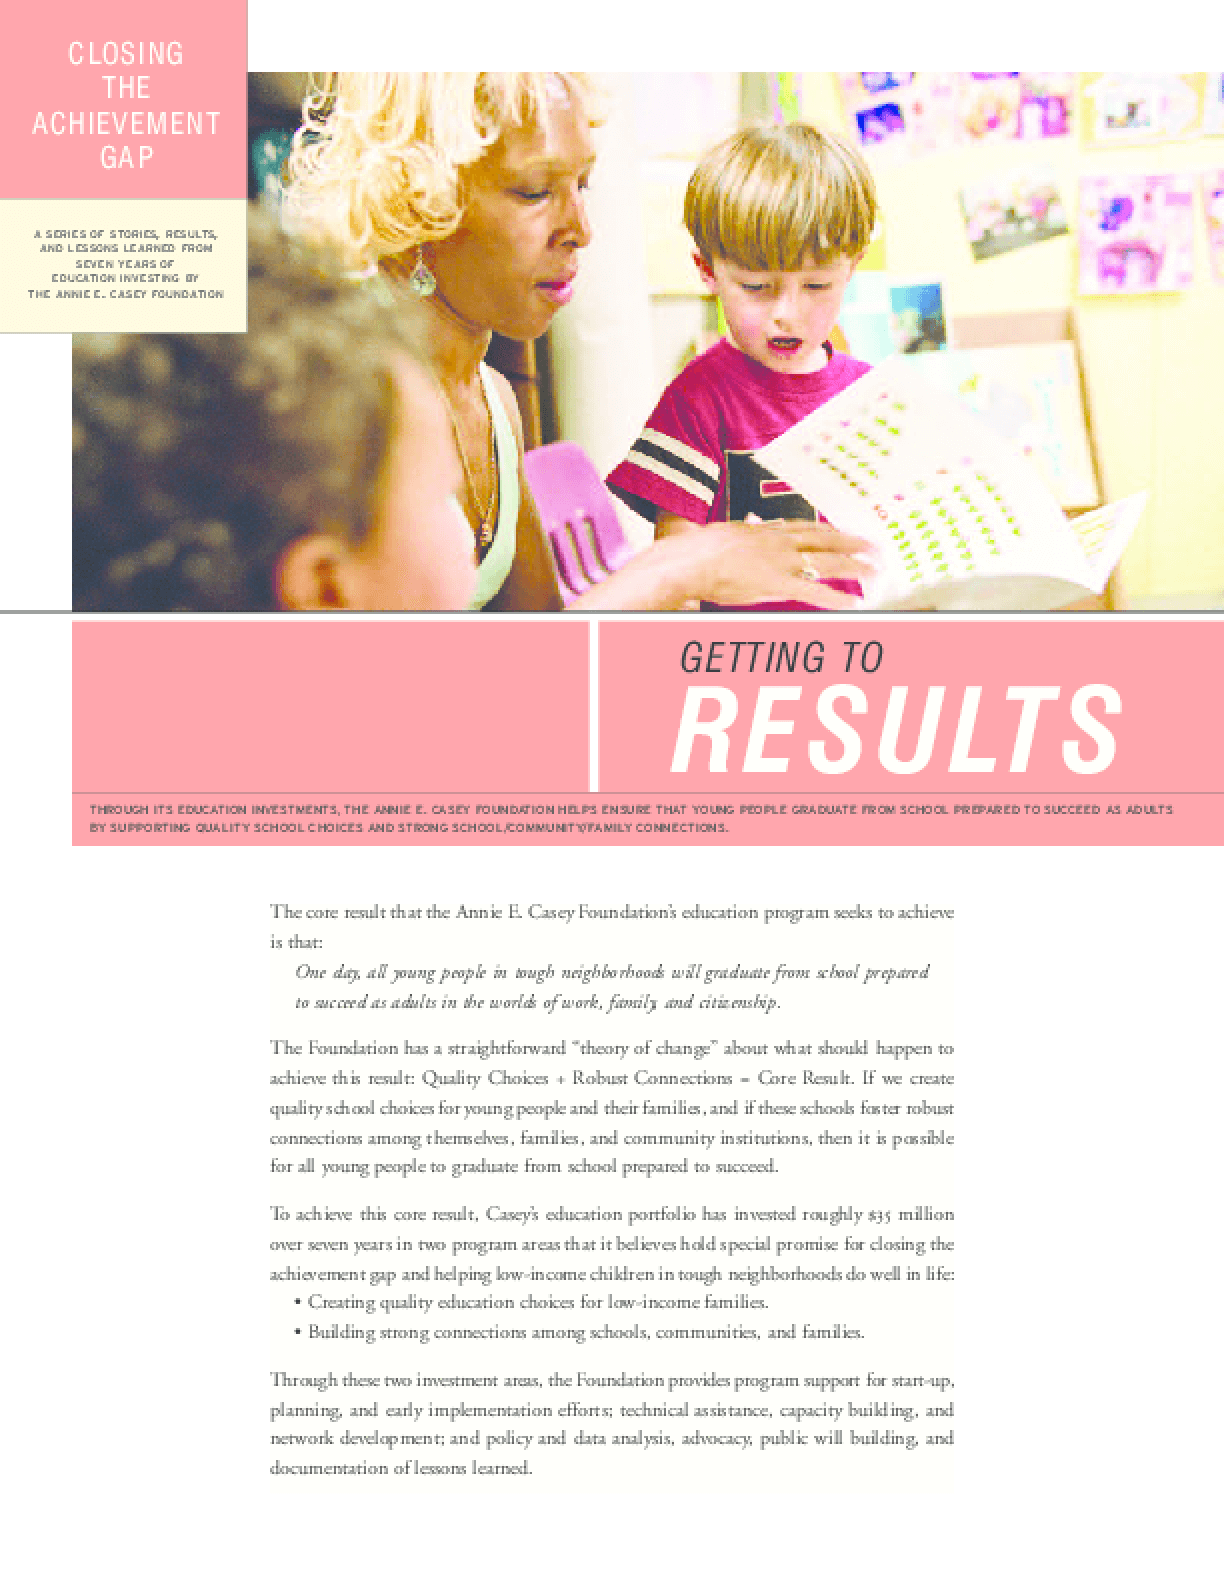 Closing the Achievement Gap: Getting to Results